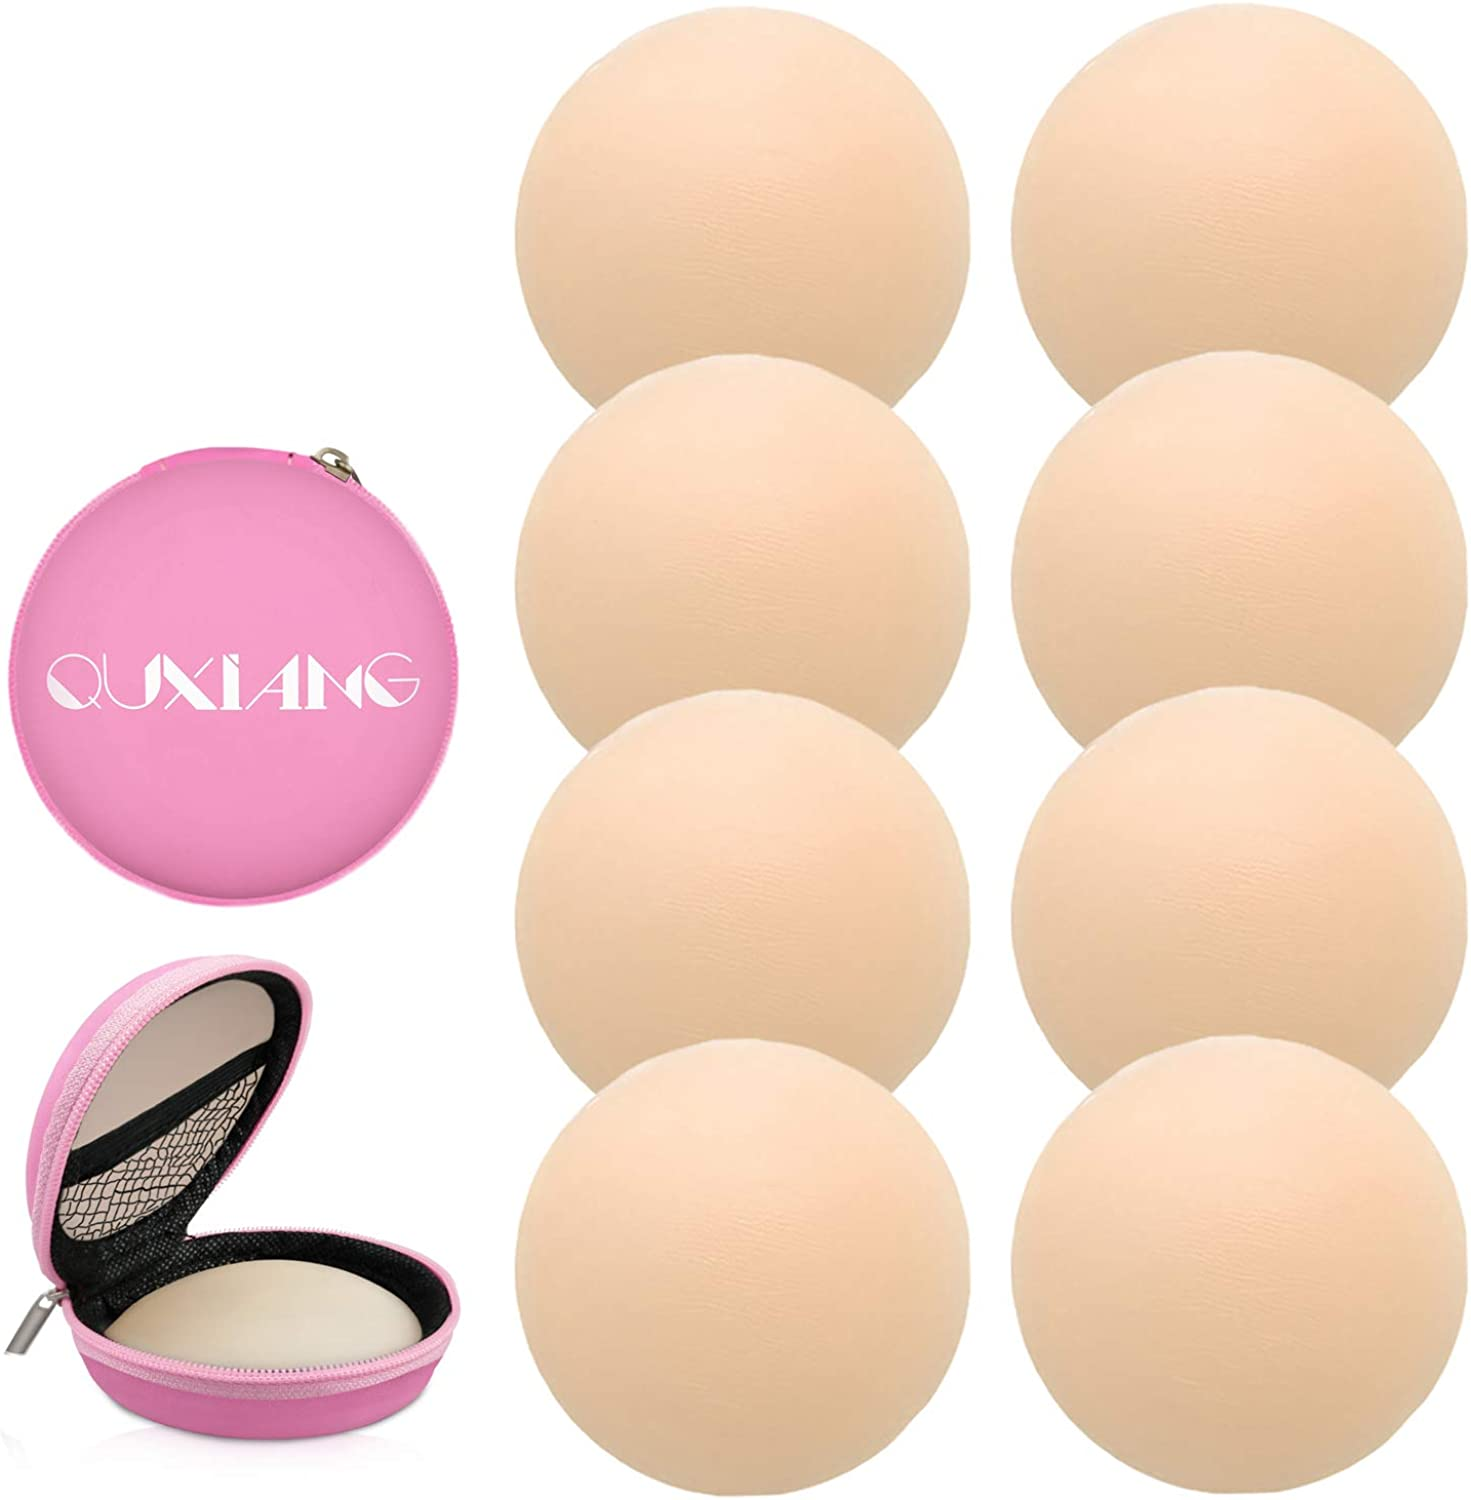 QUXIANG 4 Pairs Pasties Women Nipple Covers Reusable Adhesive Silicone Nippleless Covers (4 Round)